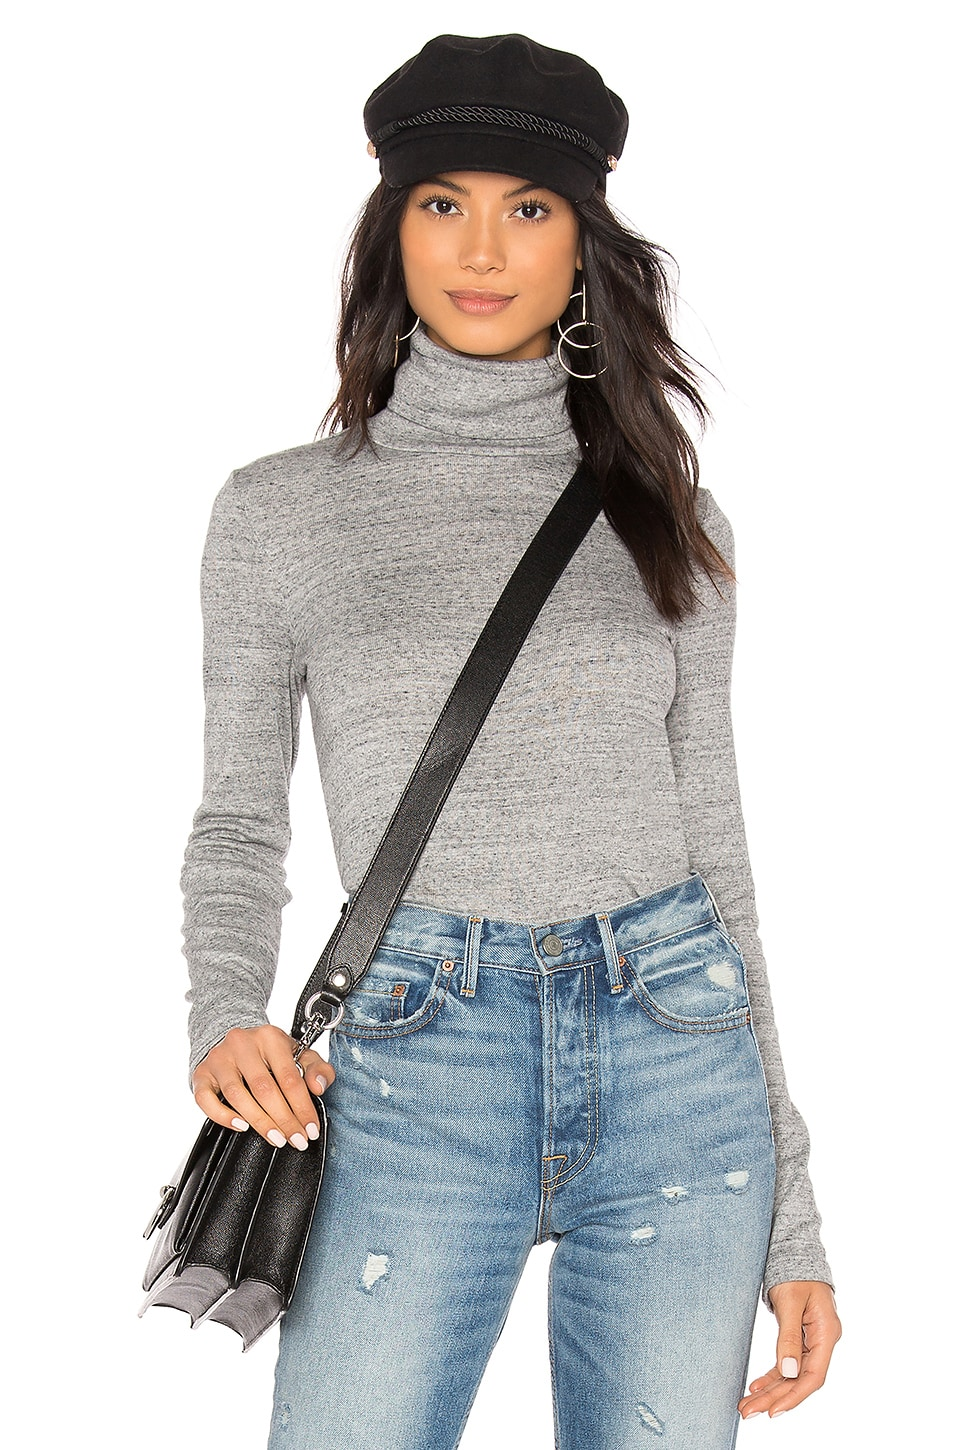 Splendid Classic Turtleneck Top in Gravel Heather Grey